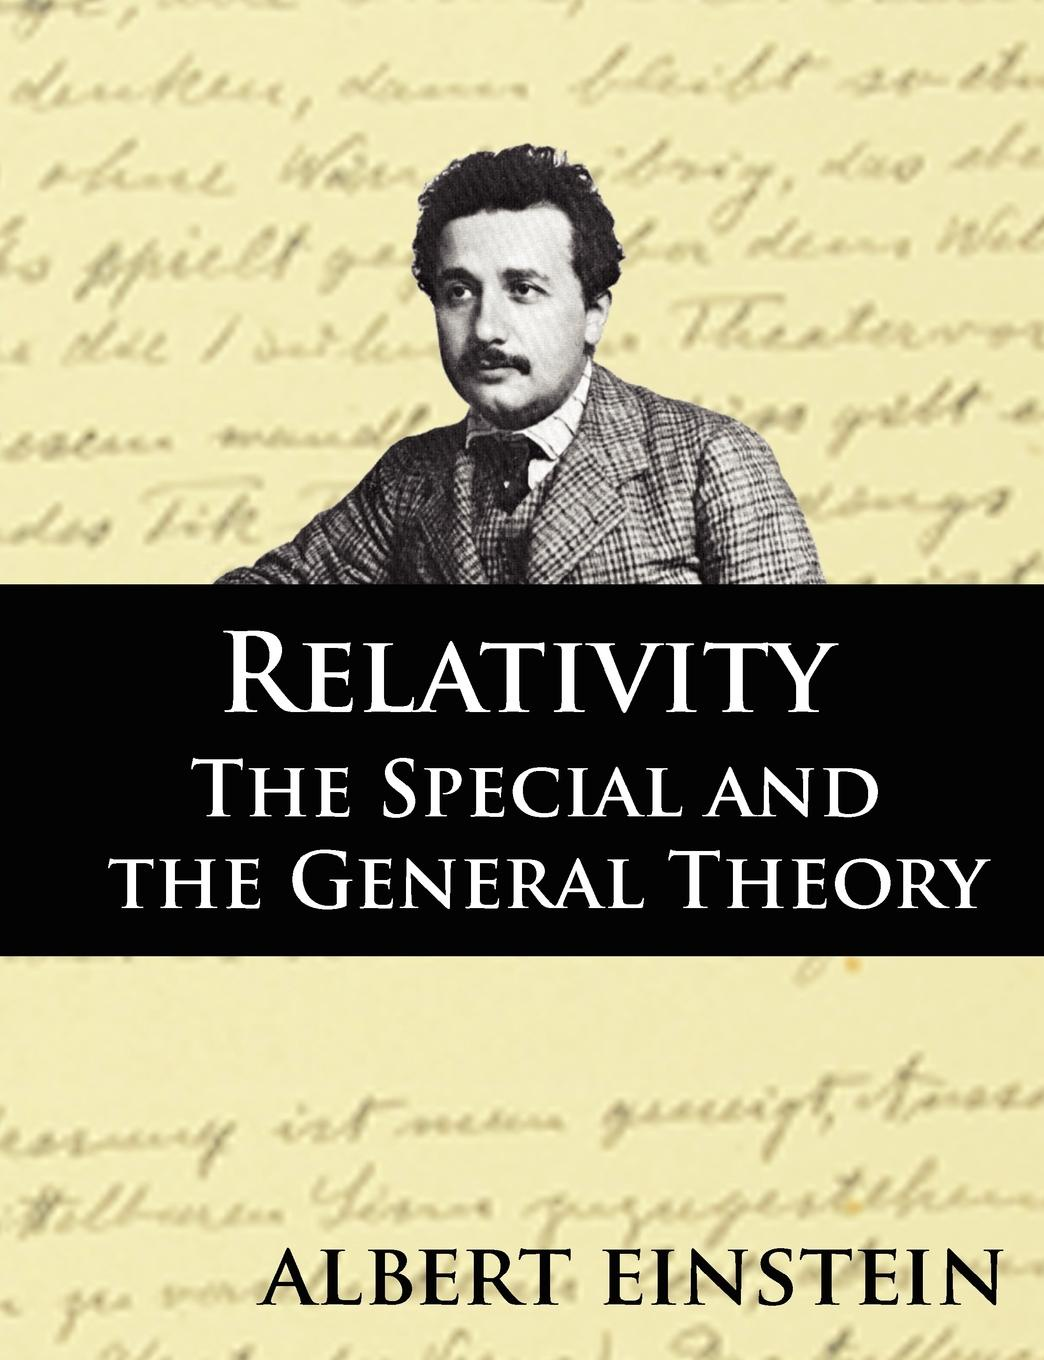 Albert Einstein, Robert Lawson Relativity. The Special and the General Theory, Second Edition